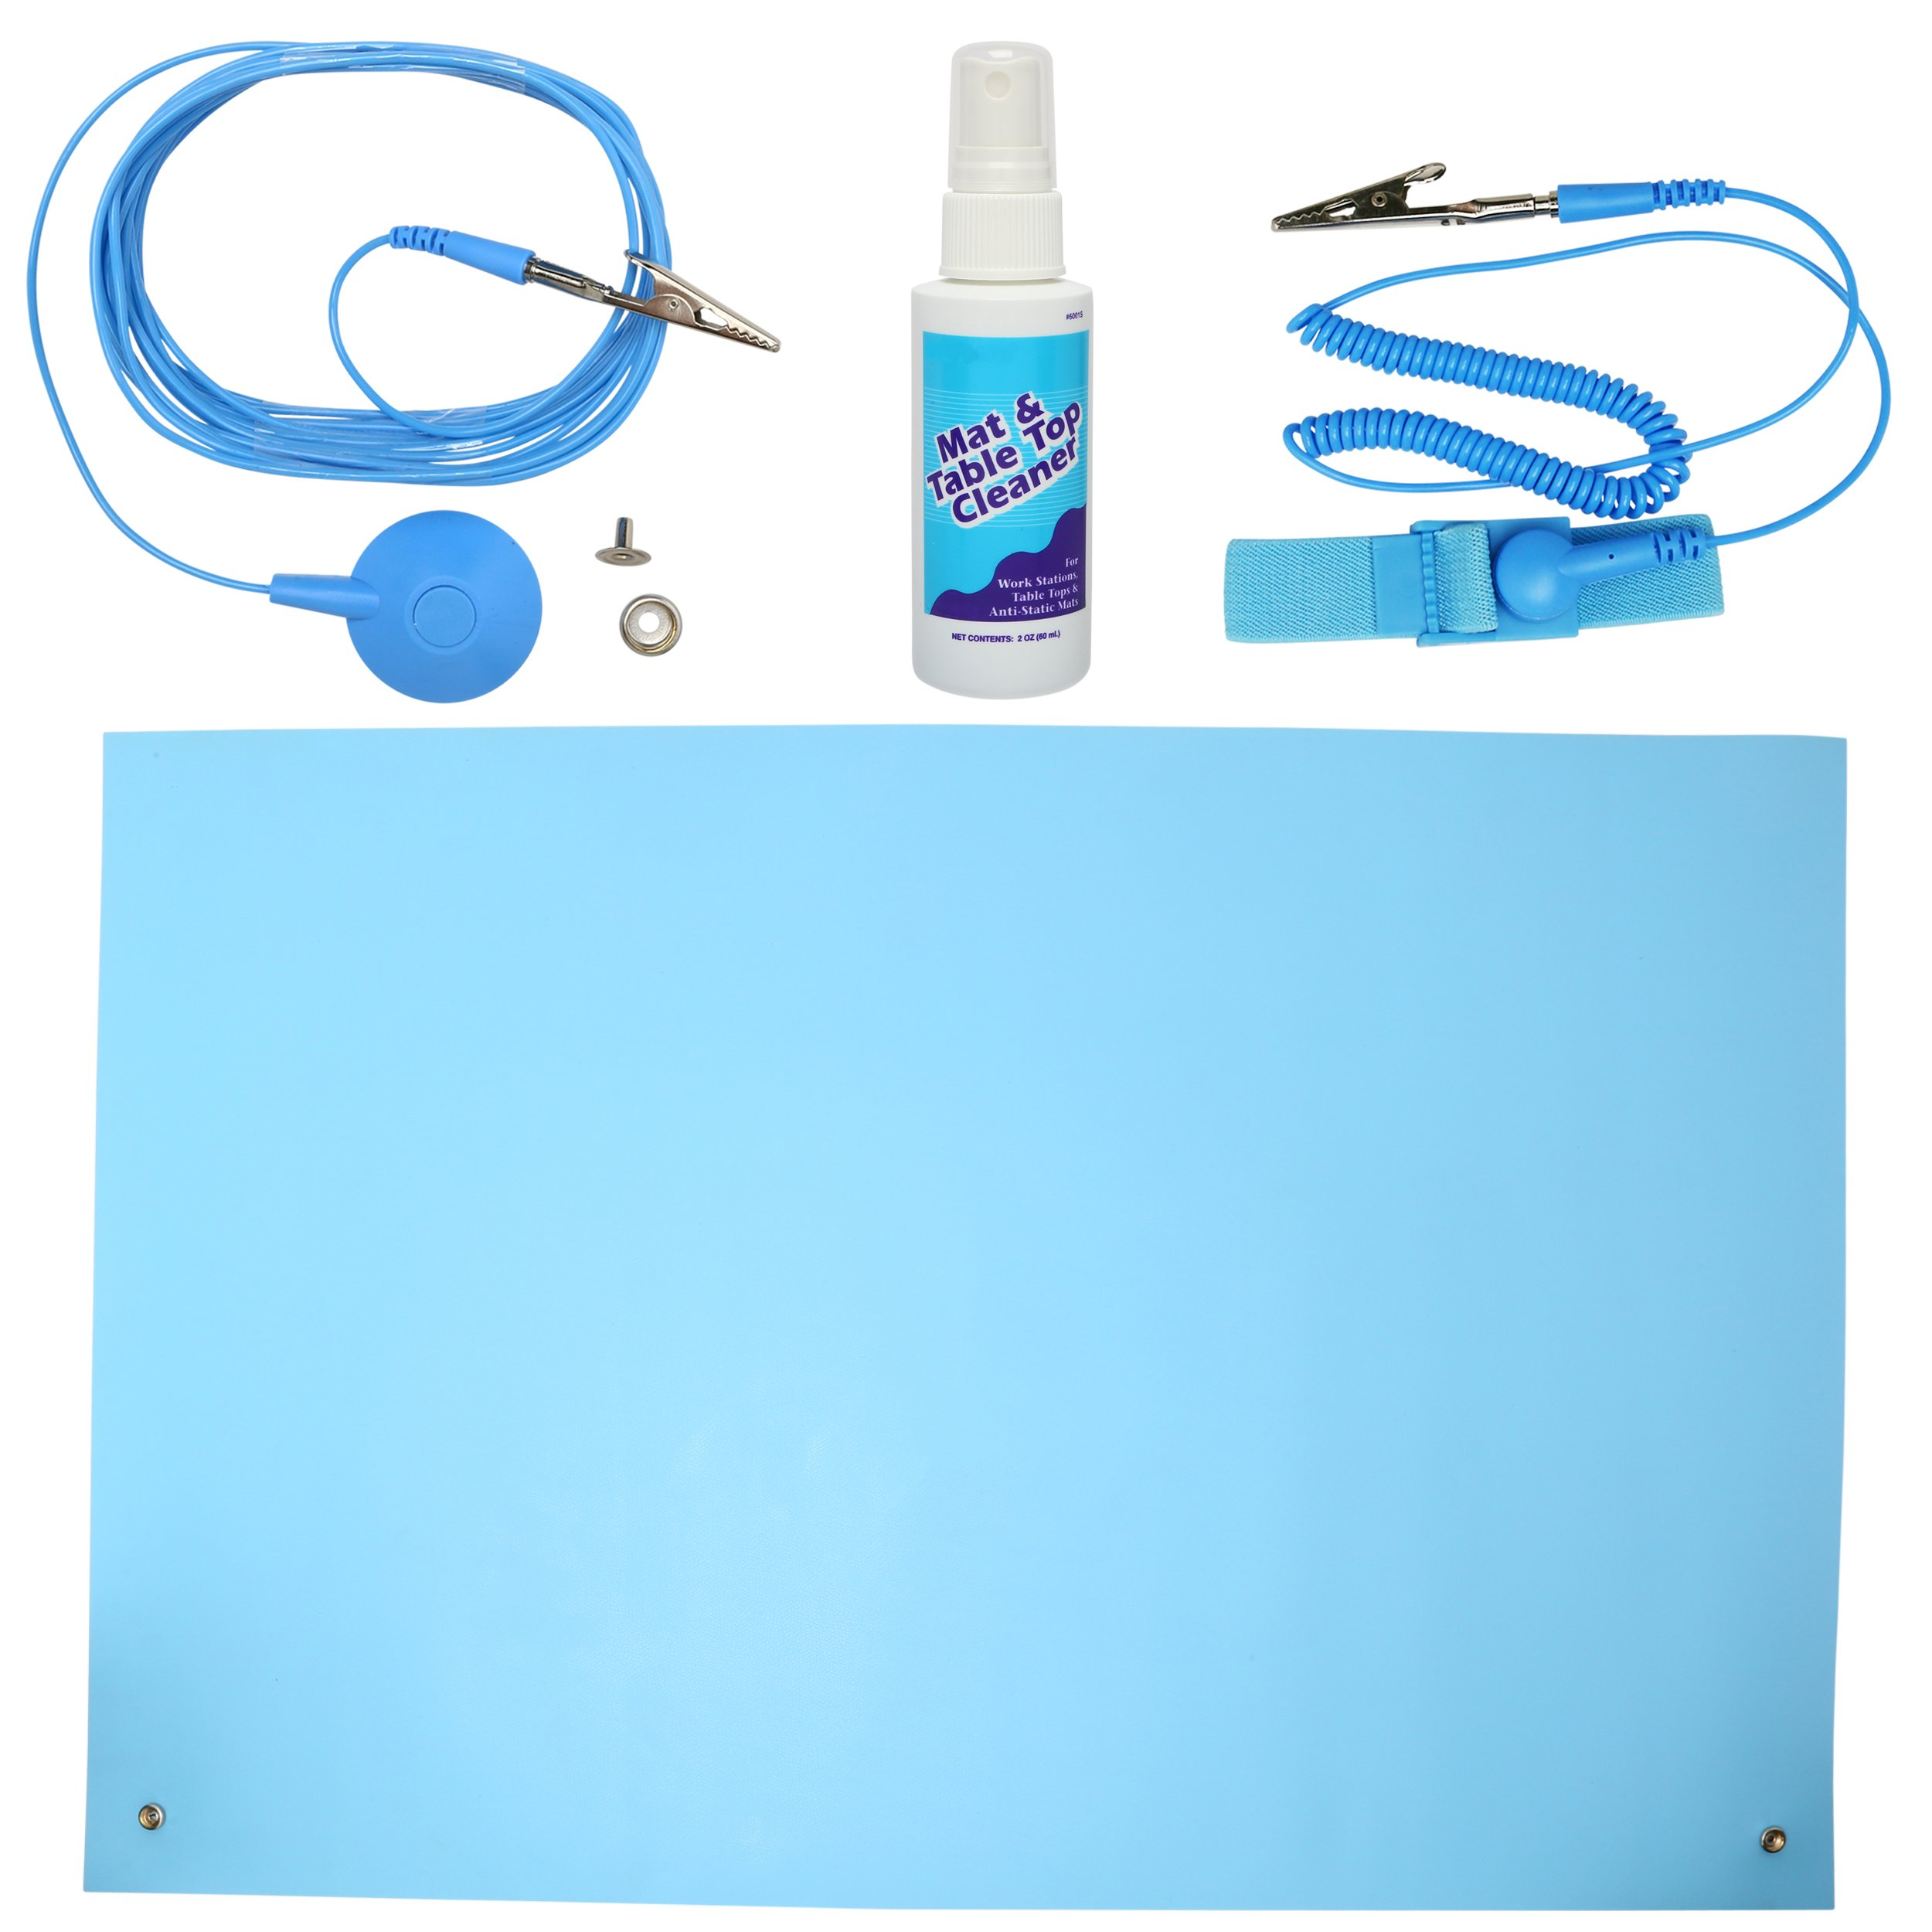 ESD High Temperature Mat Kit | 16'' x 24'' | Sky Blue | with (1) ESD Wrist Strap, (1) ESD Grounding Cord, (1) Bottle of Mat Cleaner